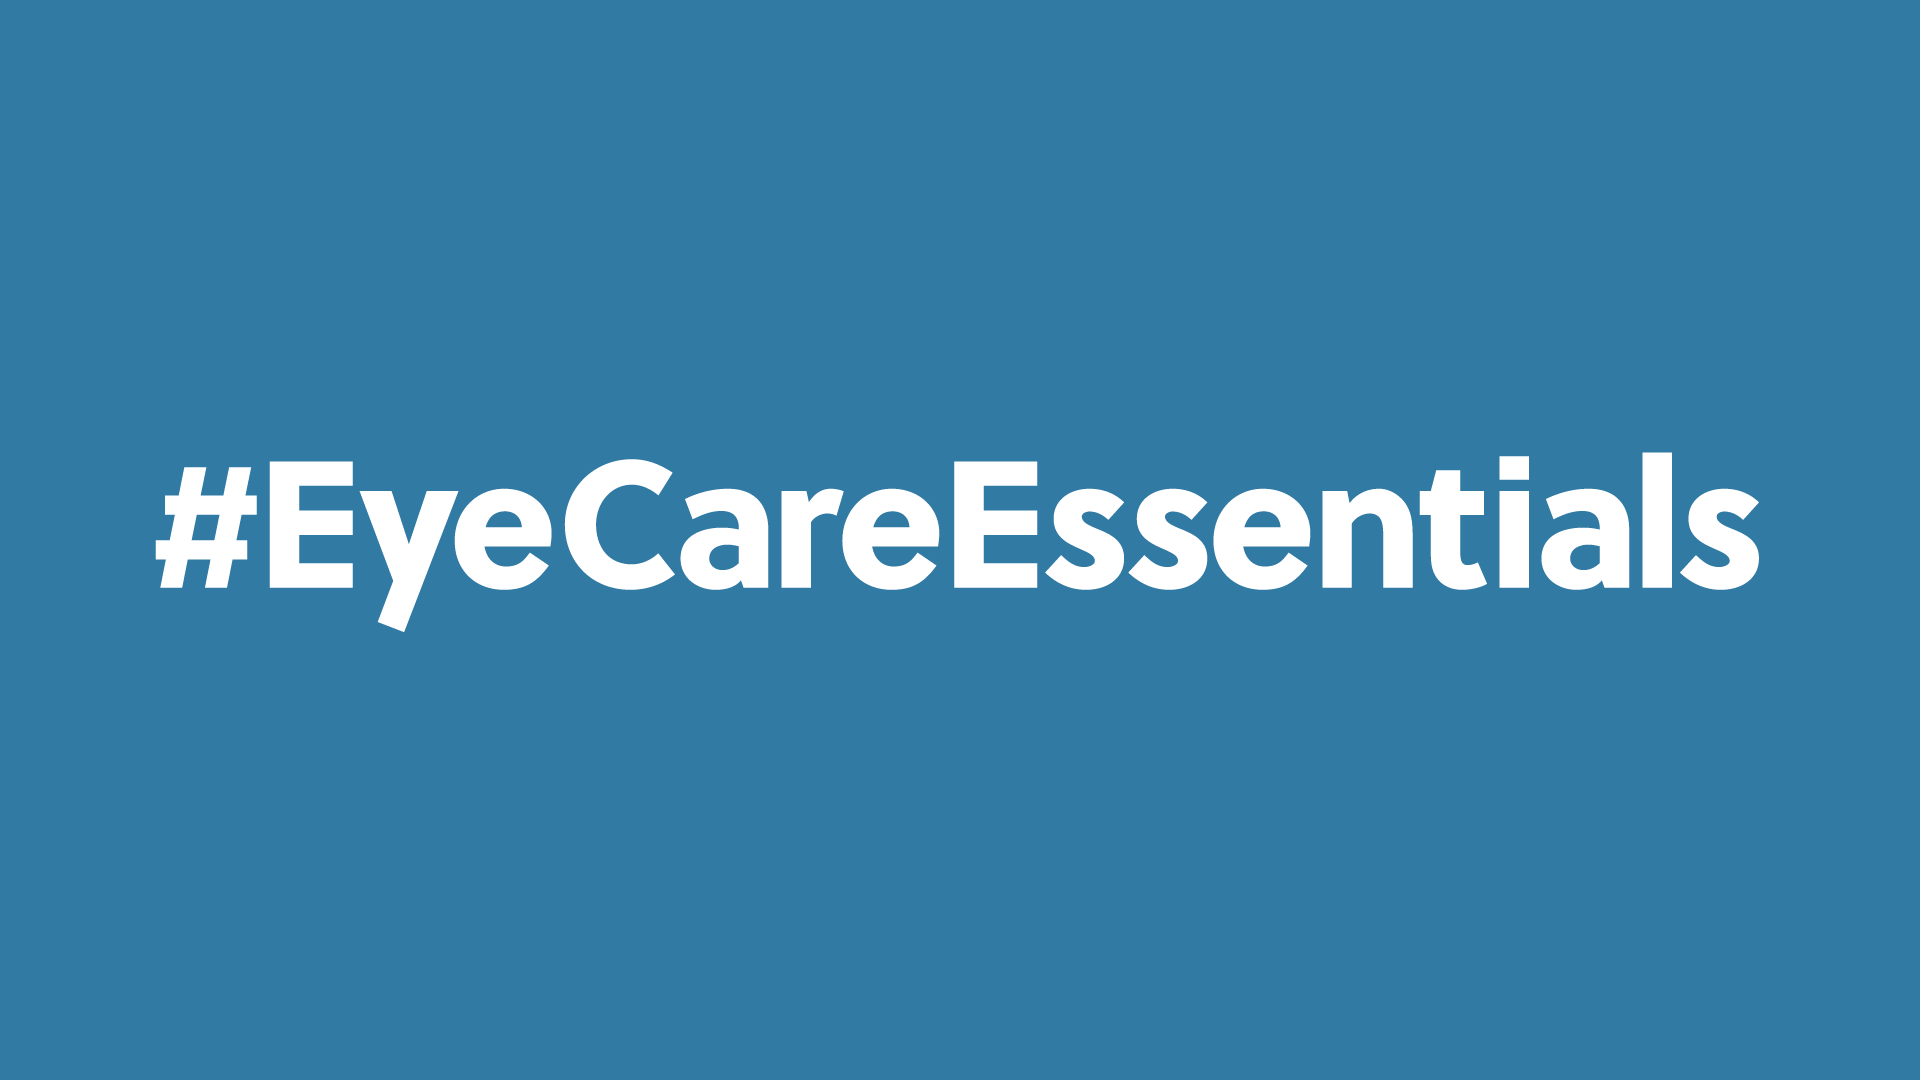 Eye Care Essentals campaign header